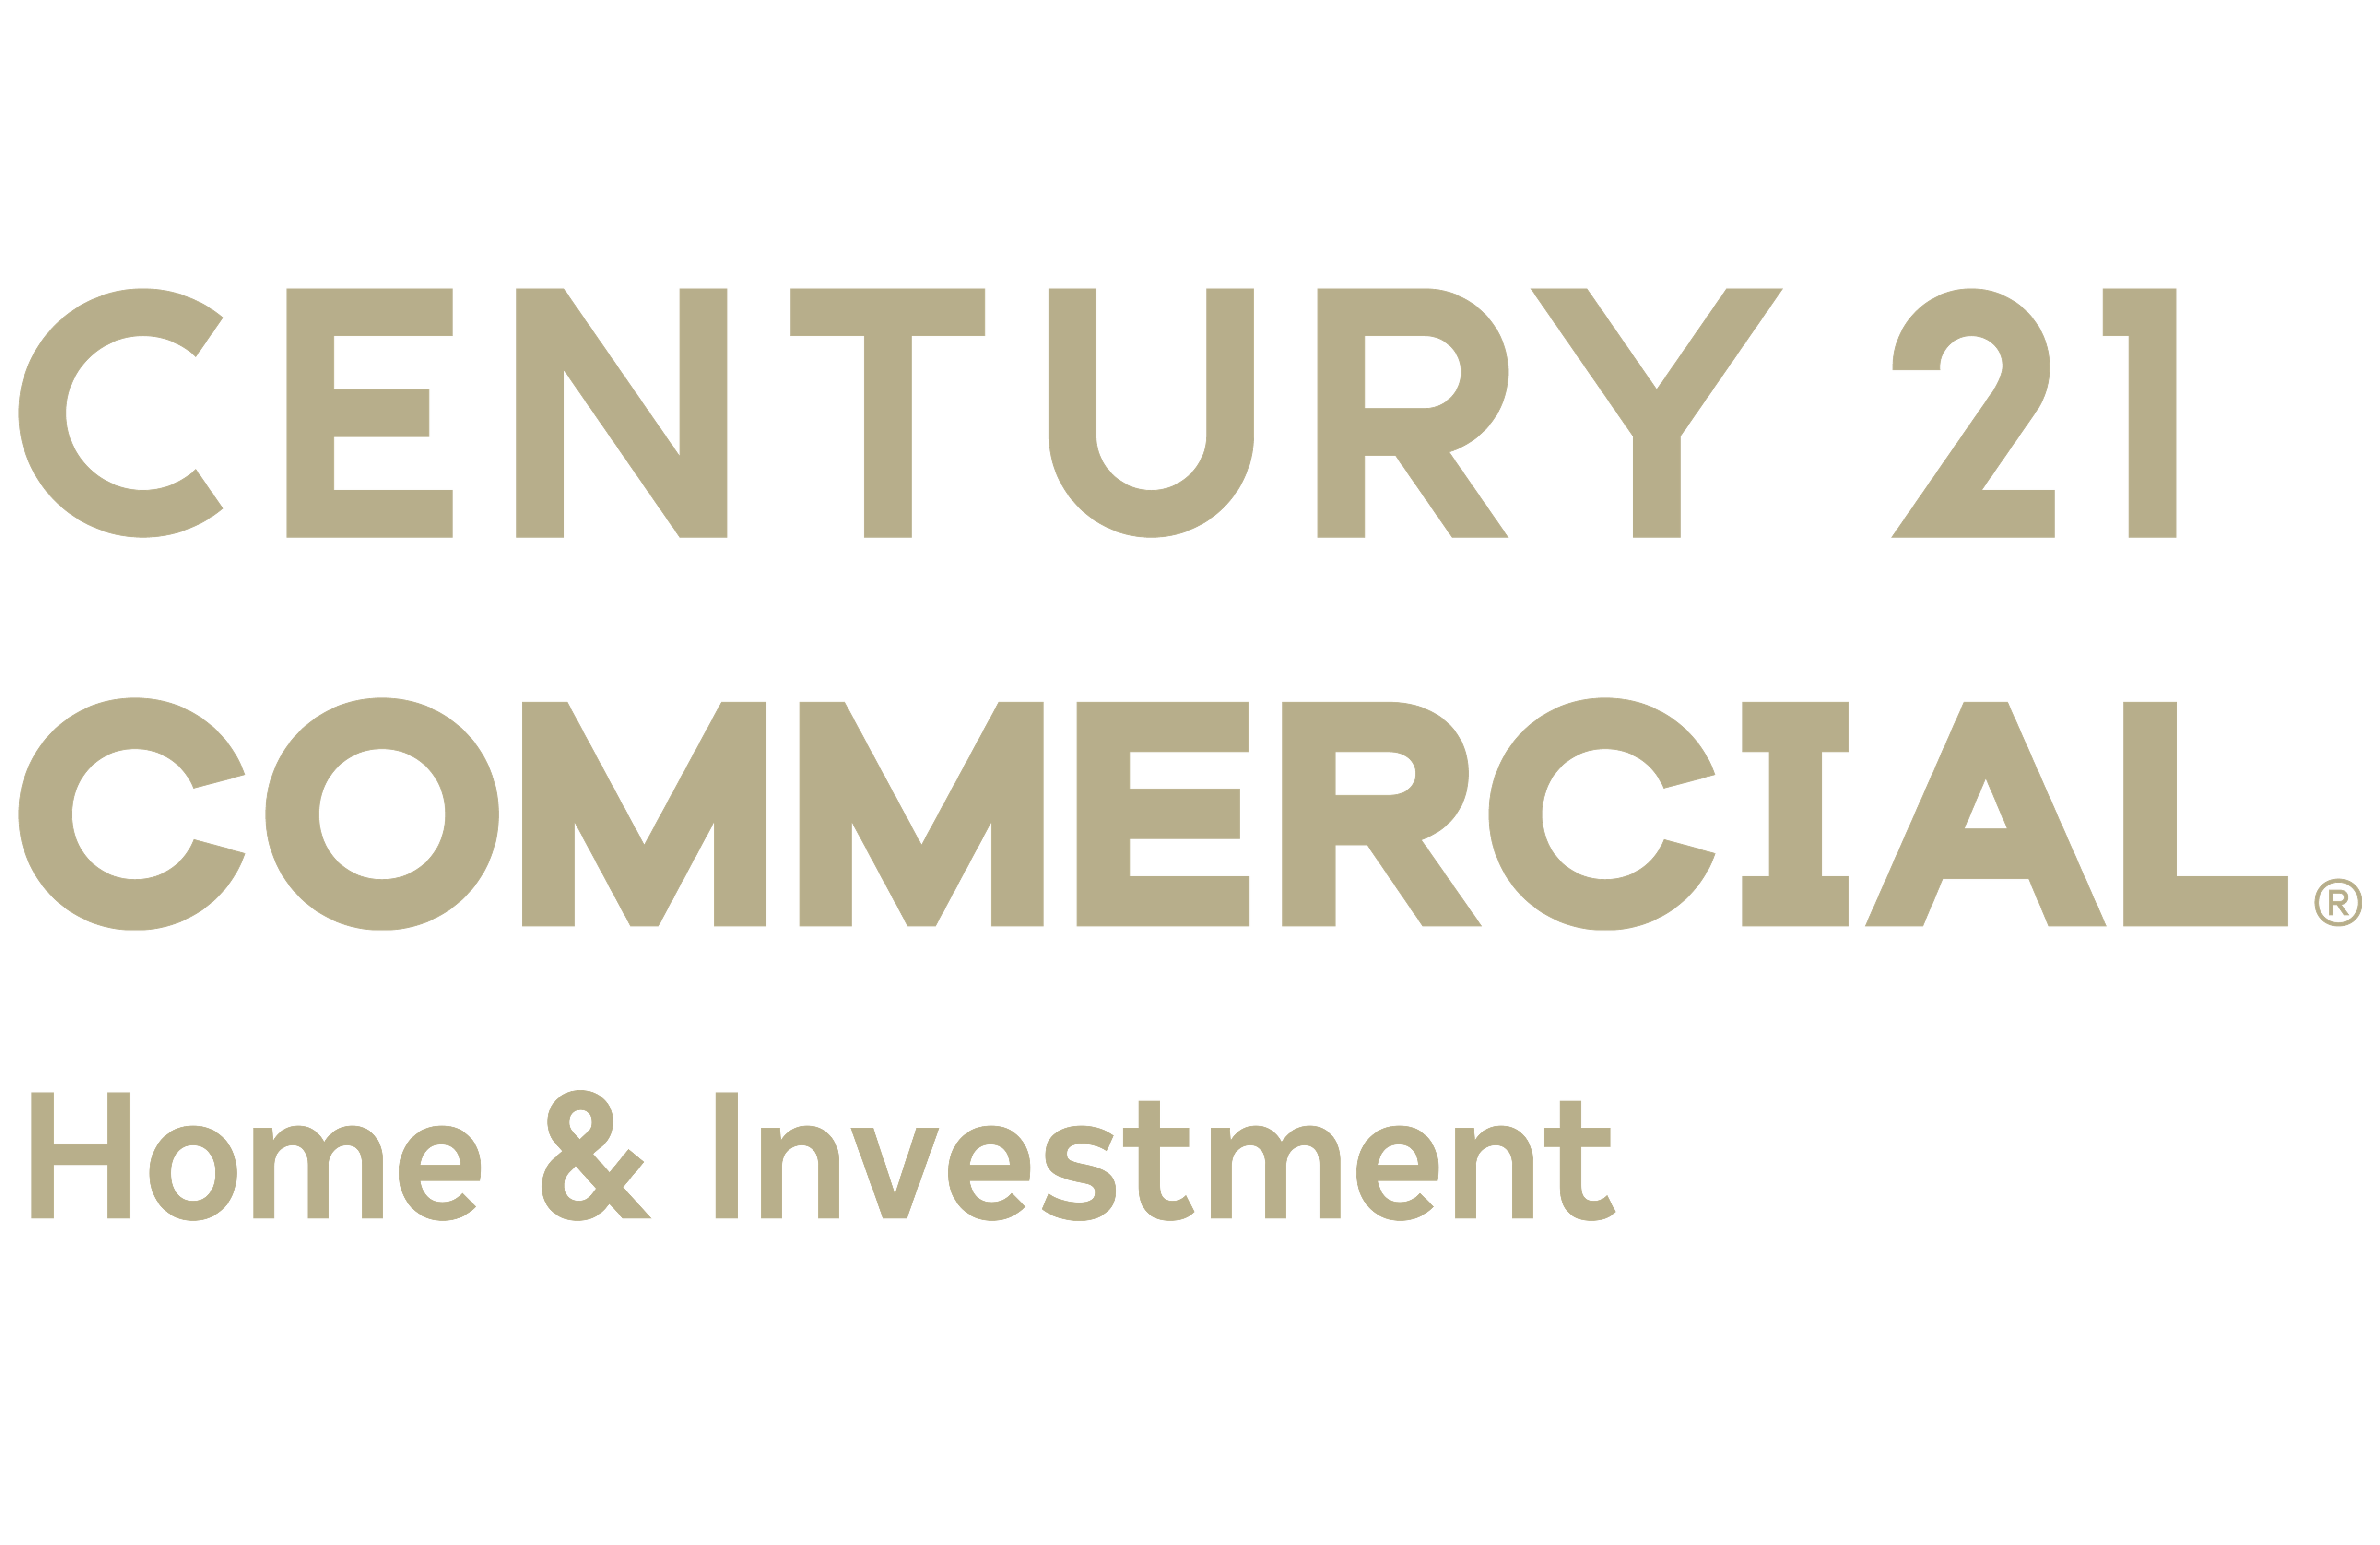 CENTURY 21 Home & Investment